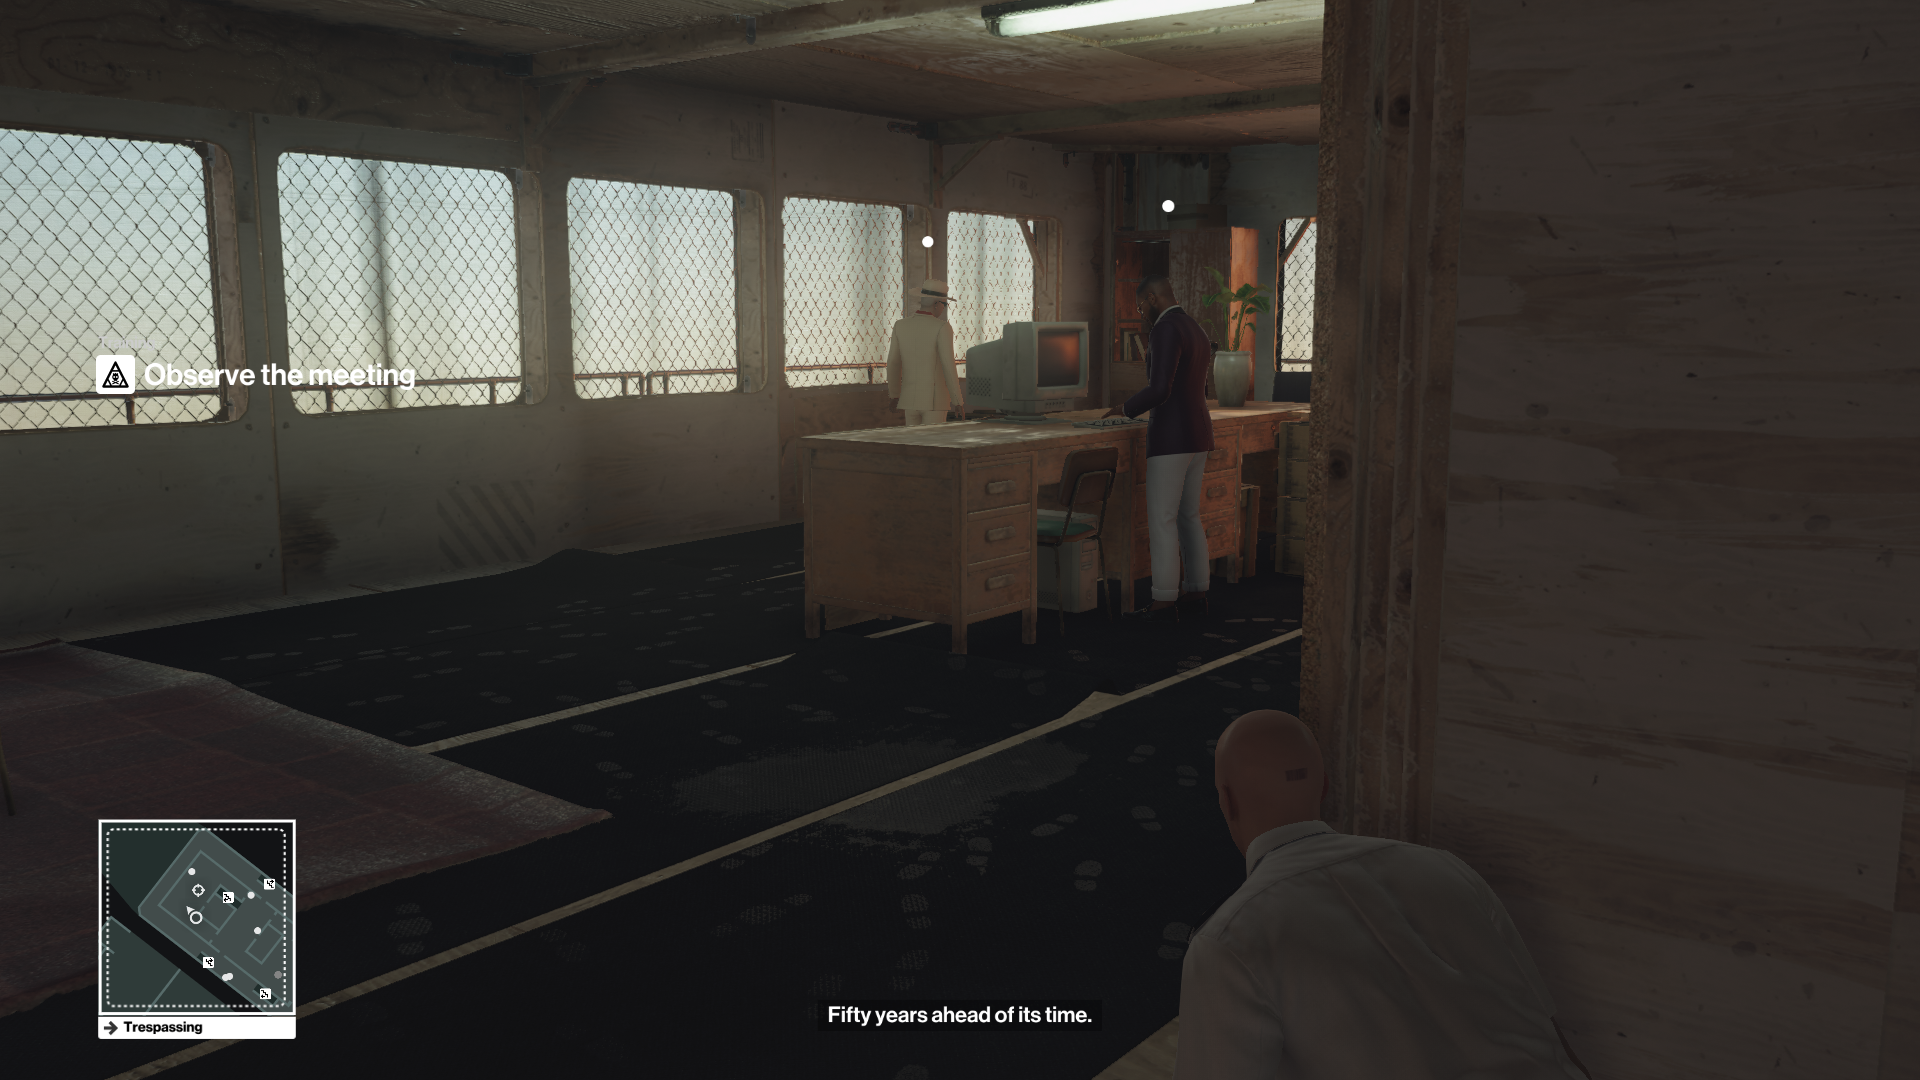 Hitman Ps4 Review Weapon Of Choice Playstation Lifestyle